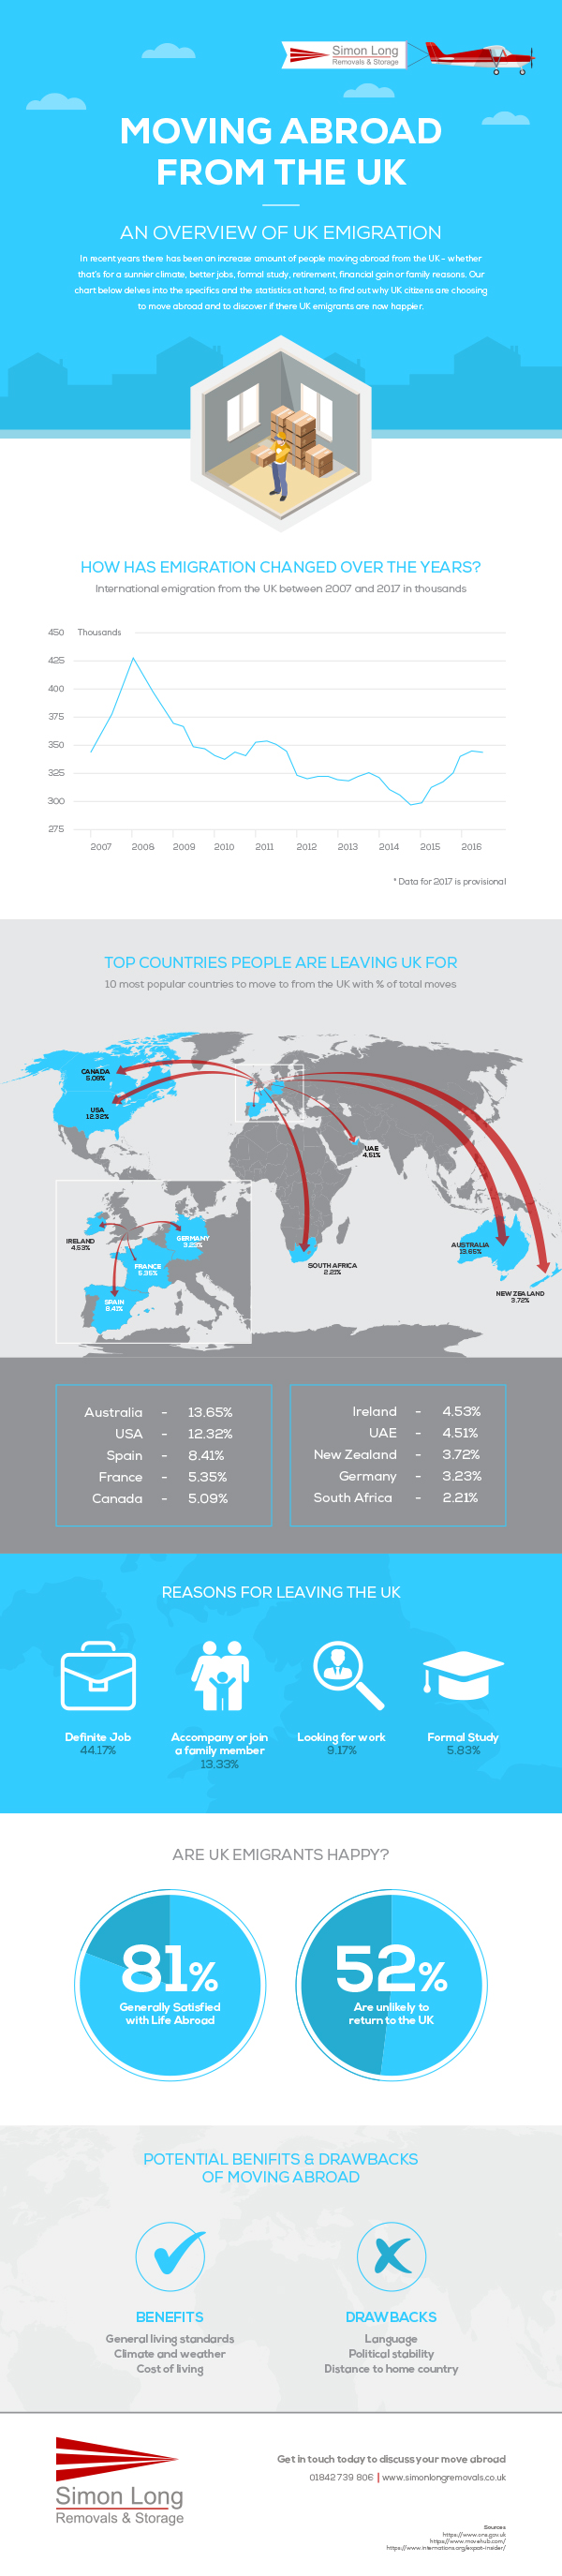 moving abroad from the UK: overview of UK emigration infographic